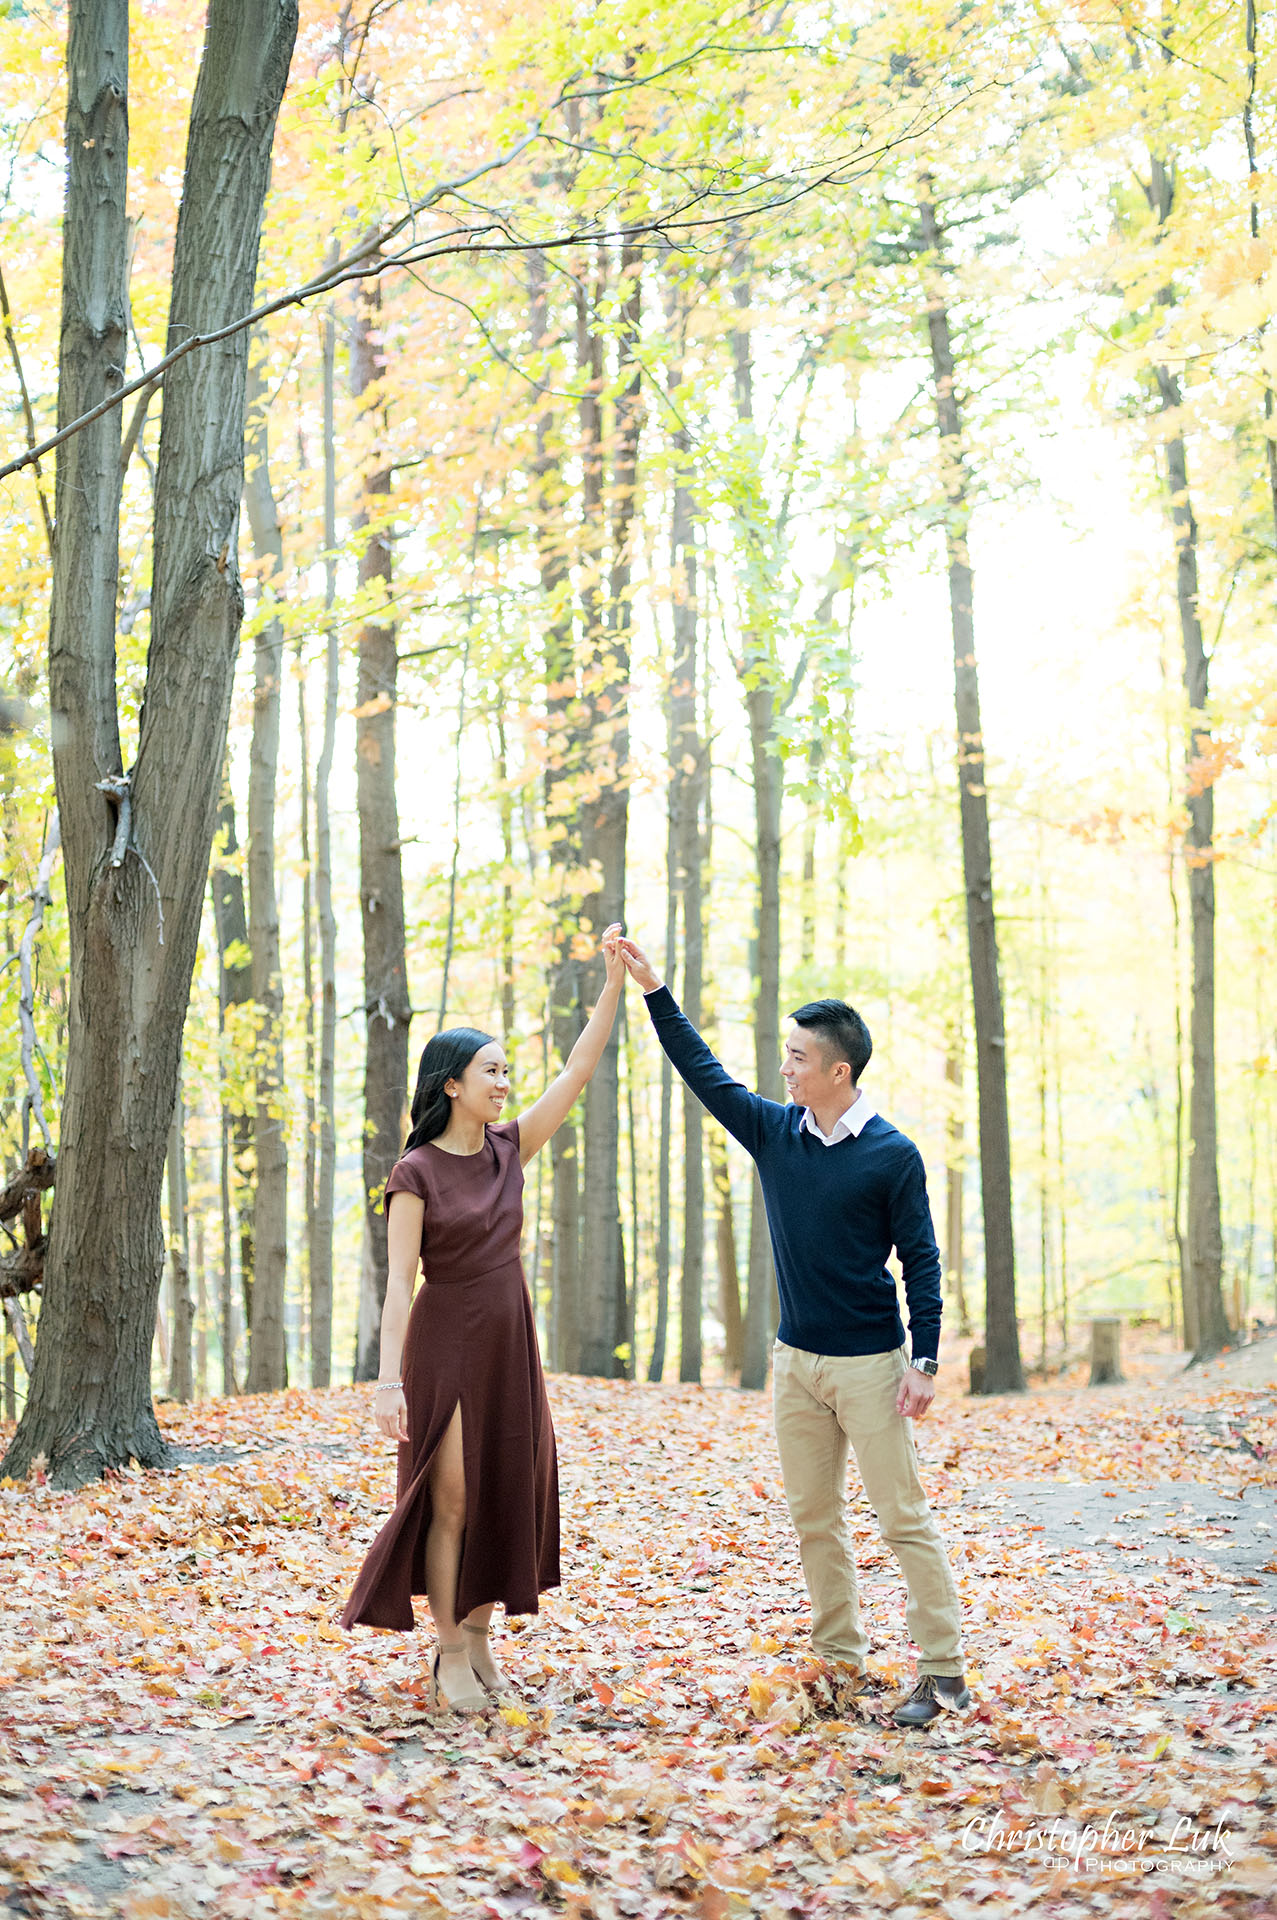 Christopher Luk Toronto Wedding Engagement Session Photographer Autumn Fall Leaves Natural Candid Photojournalistic Bride Groom Holding Hands Walking Together Pathway Hiking Trail Dancing Twirl Spin Trees